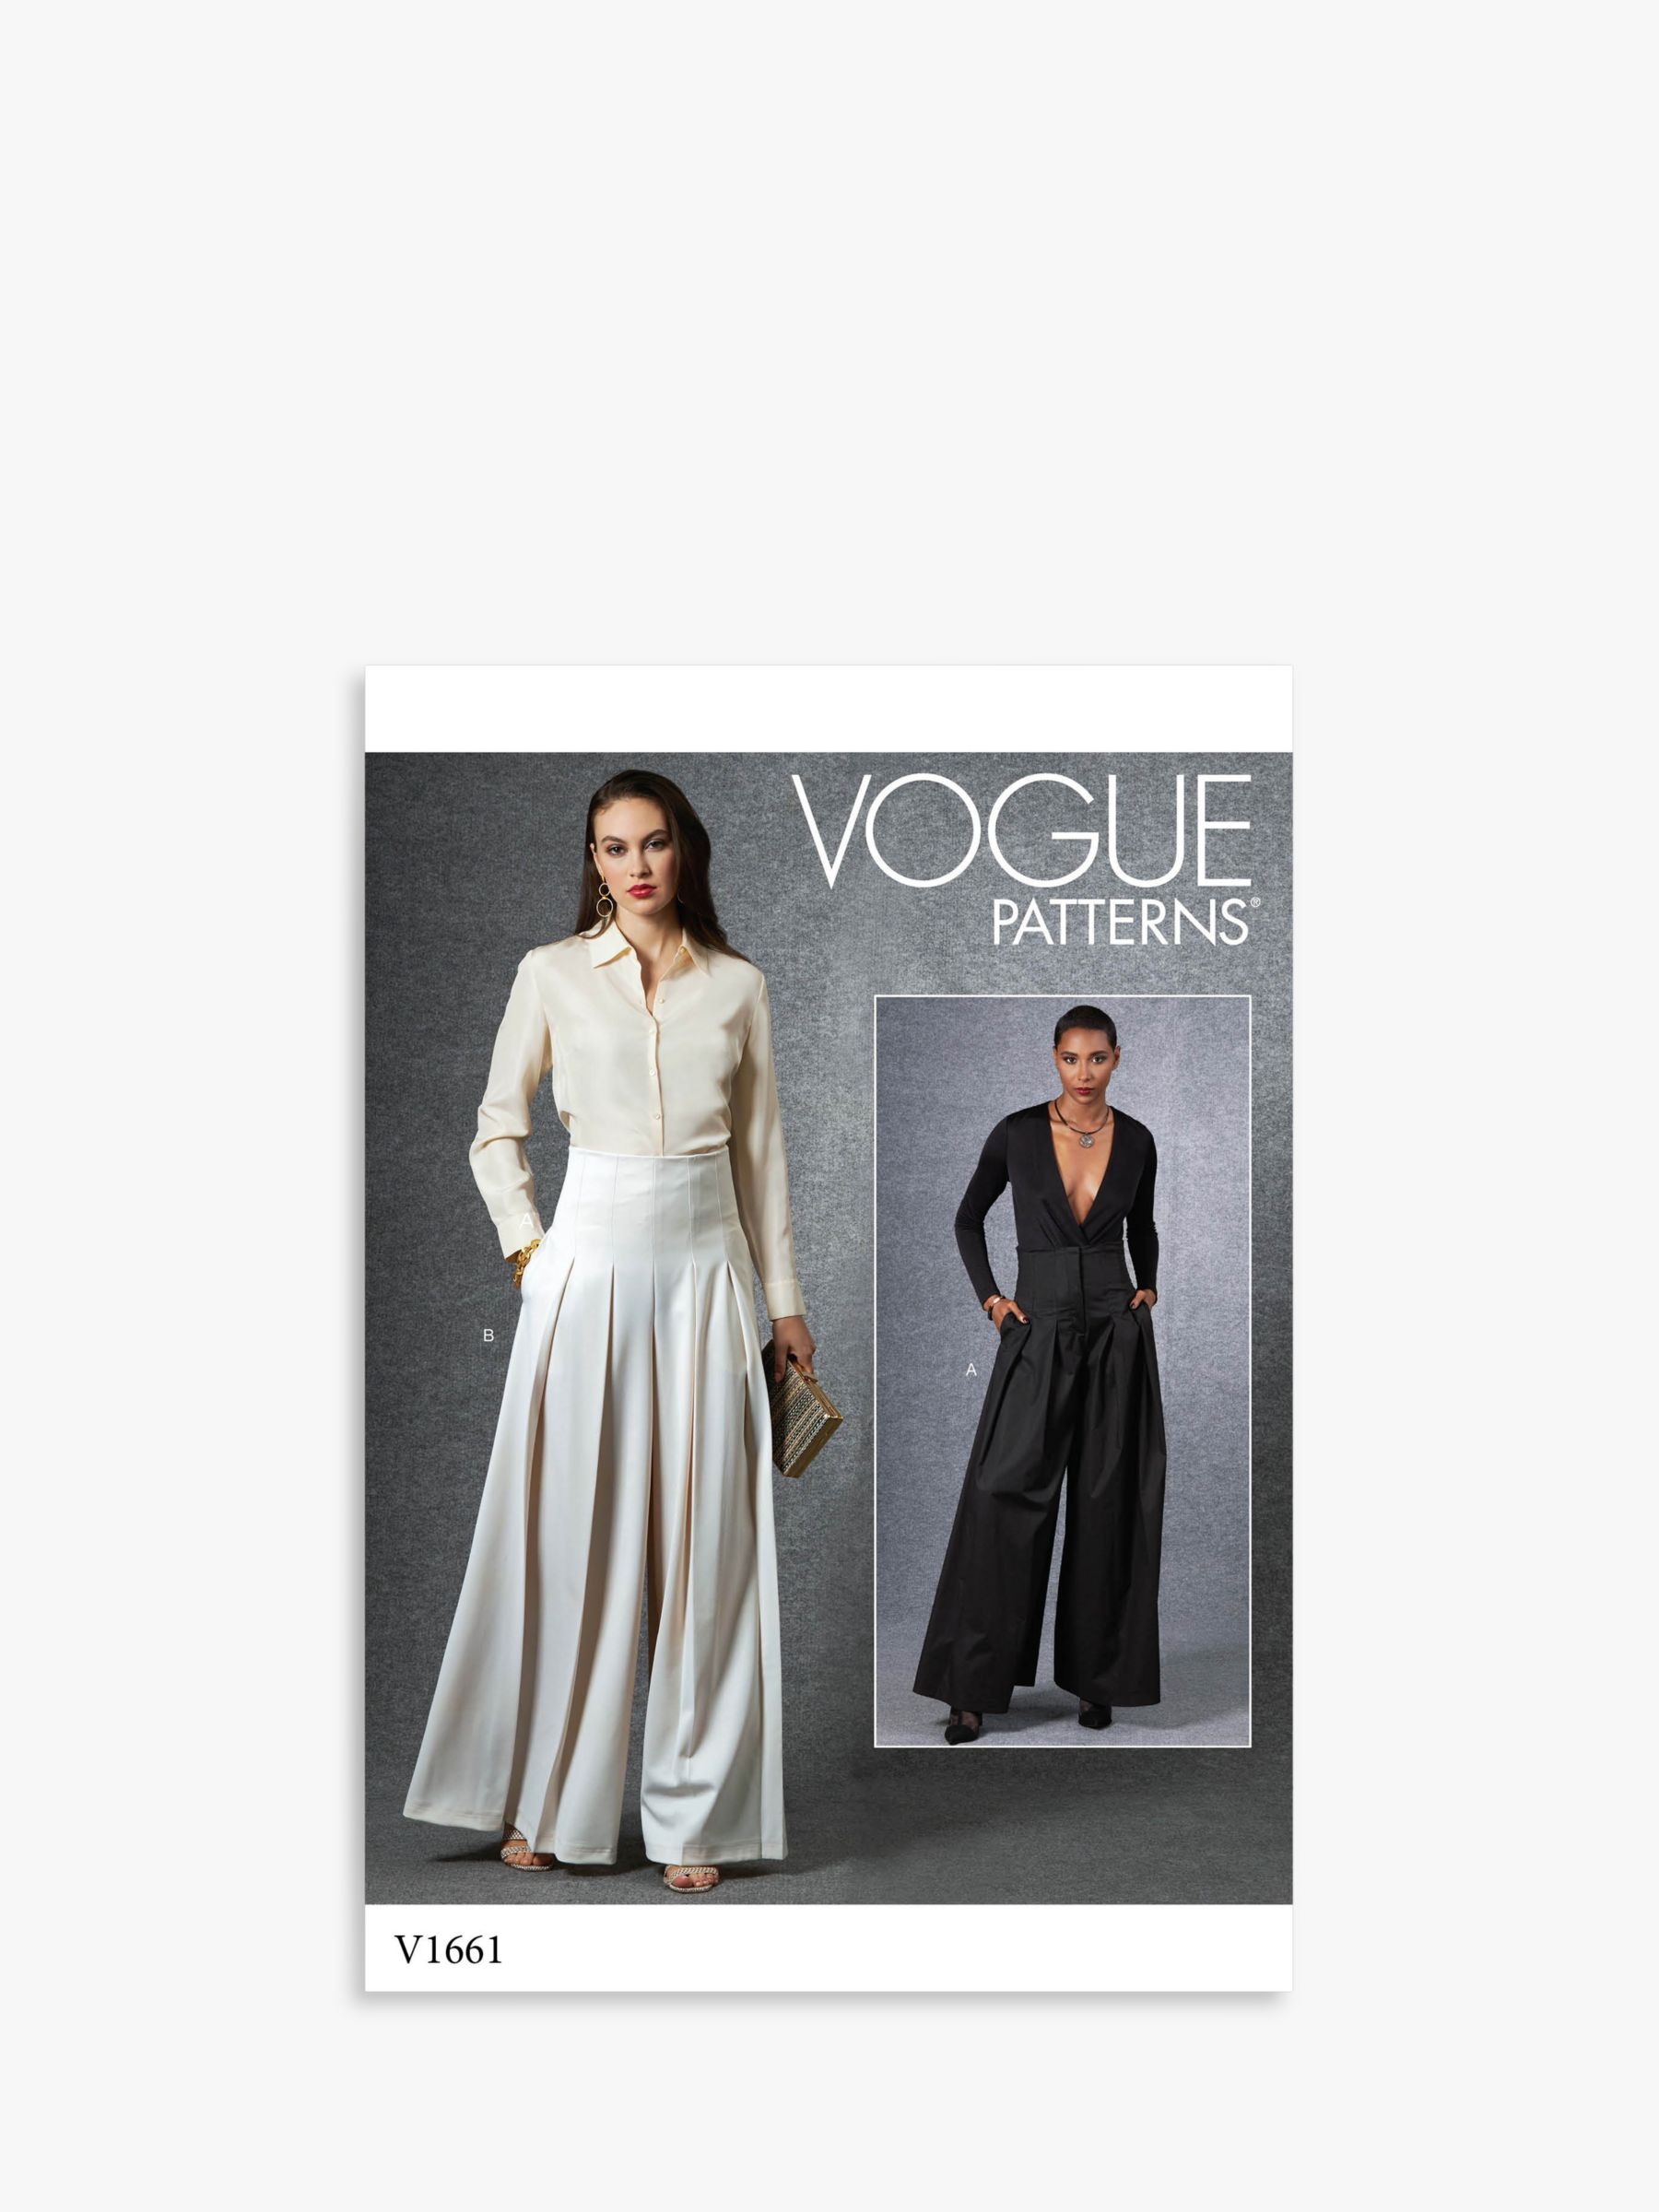 Vogue Vogue Women's Pleated and Flared Trousers Sewing Pattern, 1661